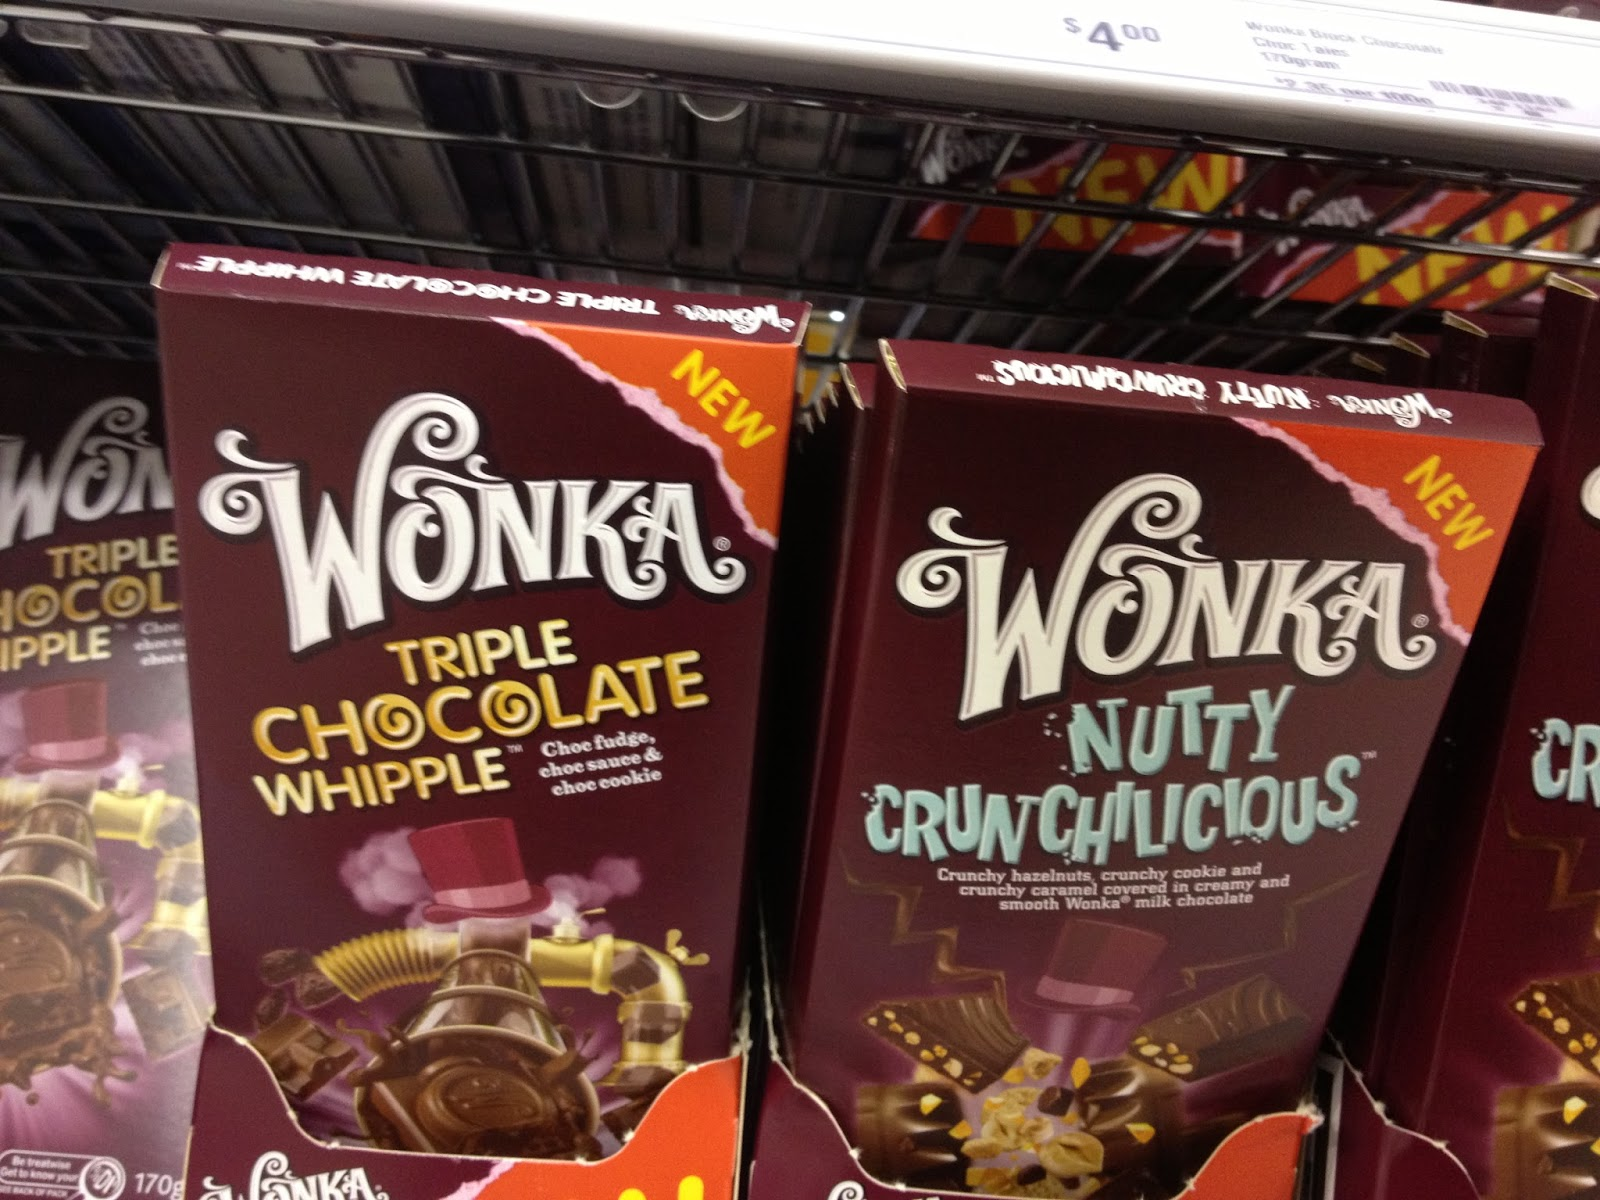 Lolly Addict - Australian Confectionery Reviews: Gossip: Wonka Bars